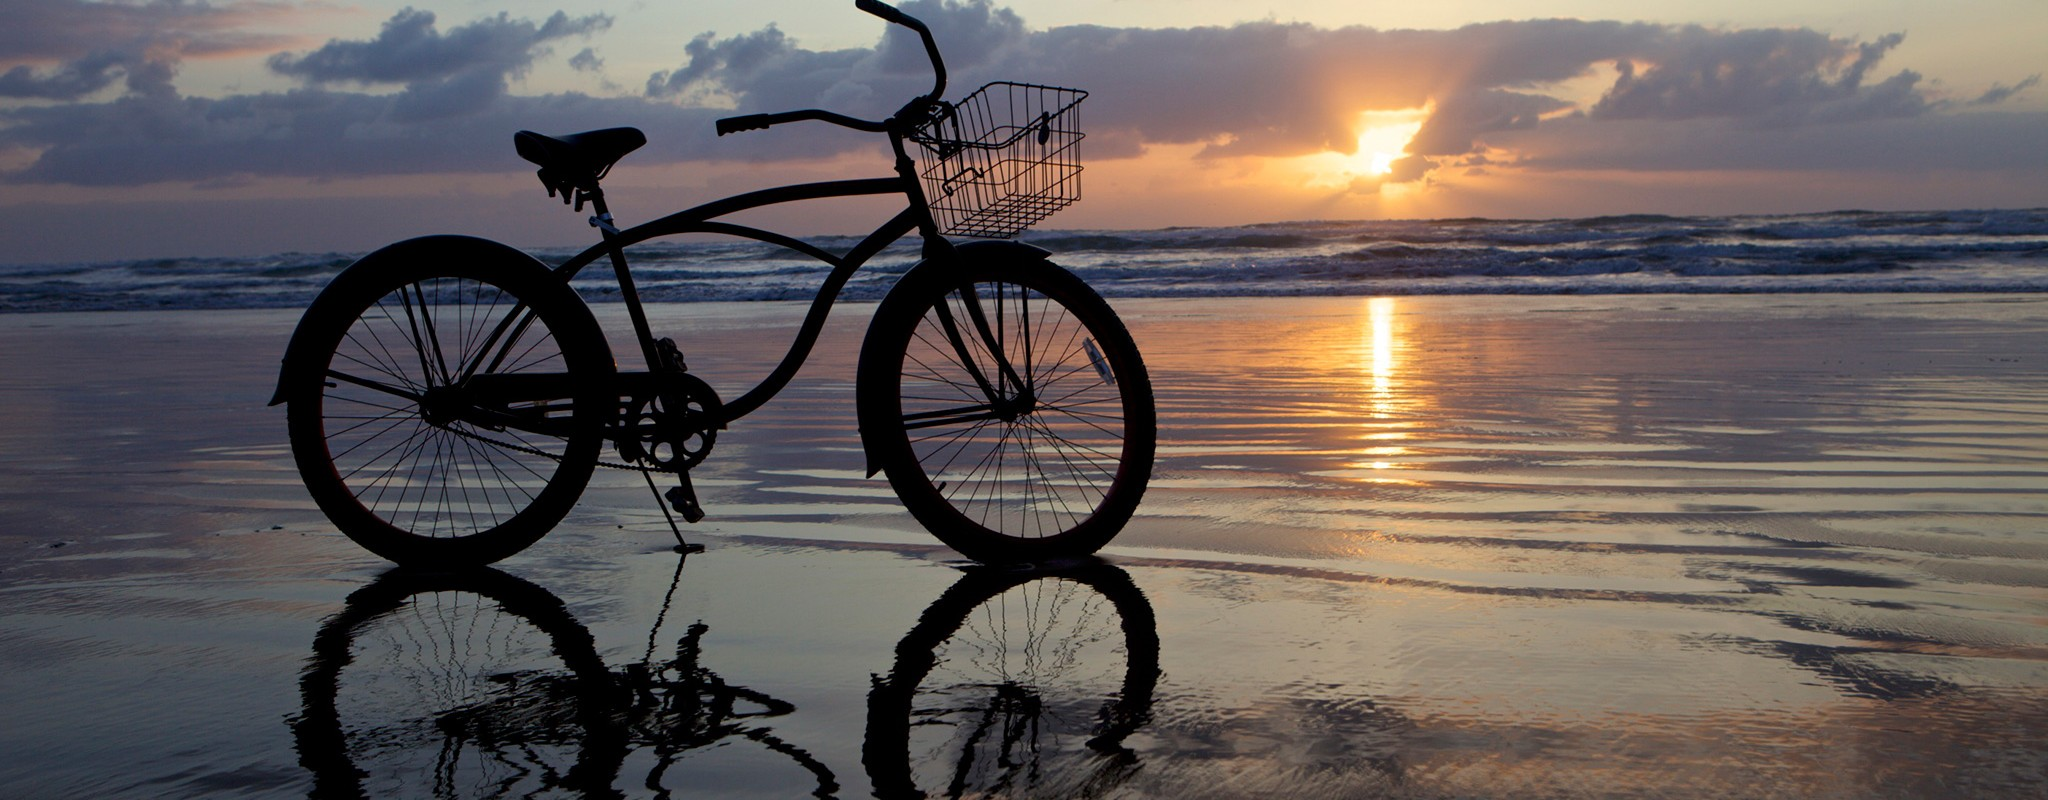 Cannon-Beach-Bike-web